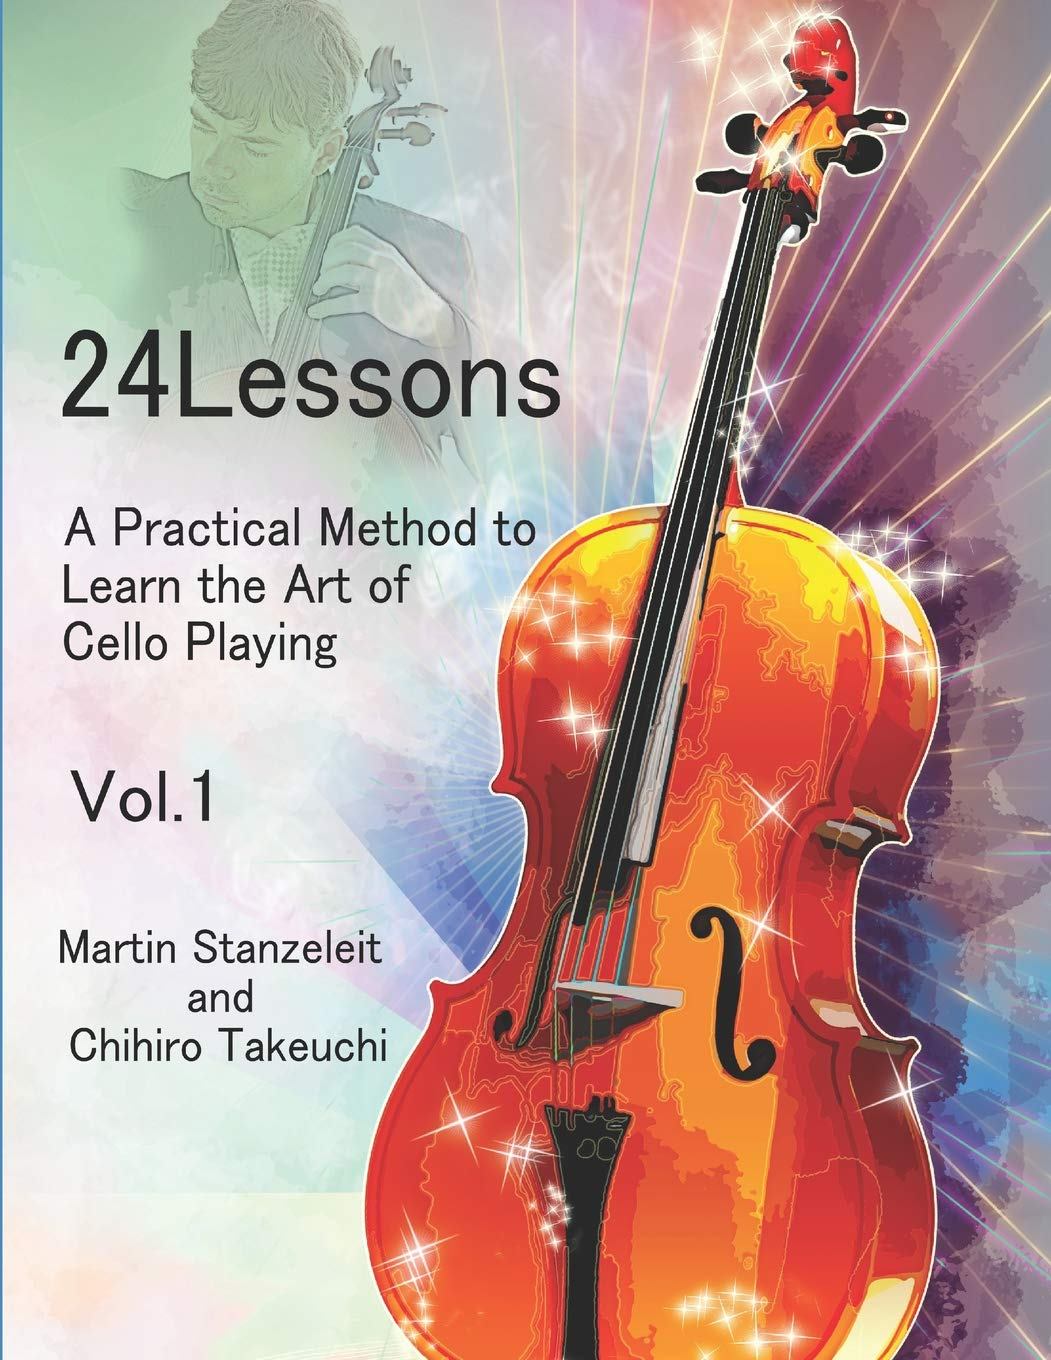 24 Lessons A Practical Method To Learn The Art Of Cello Playing Vol.1